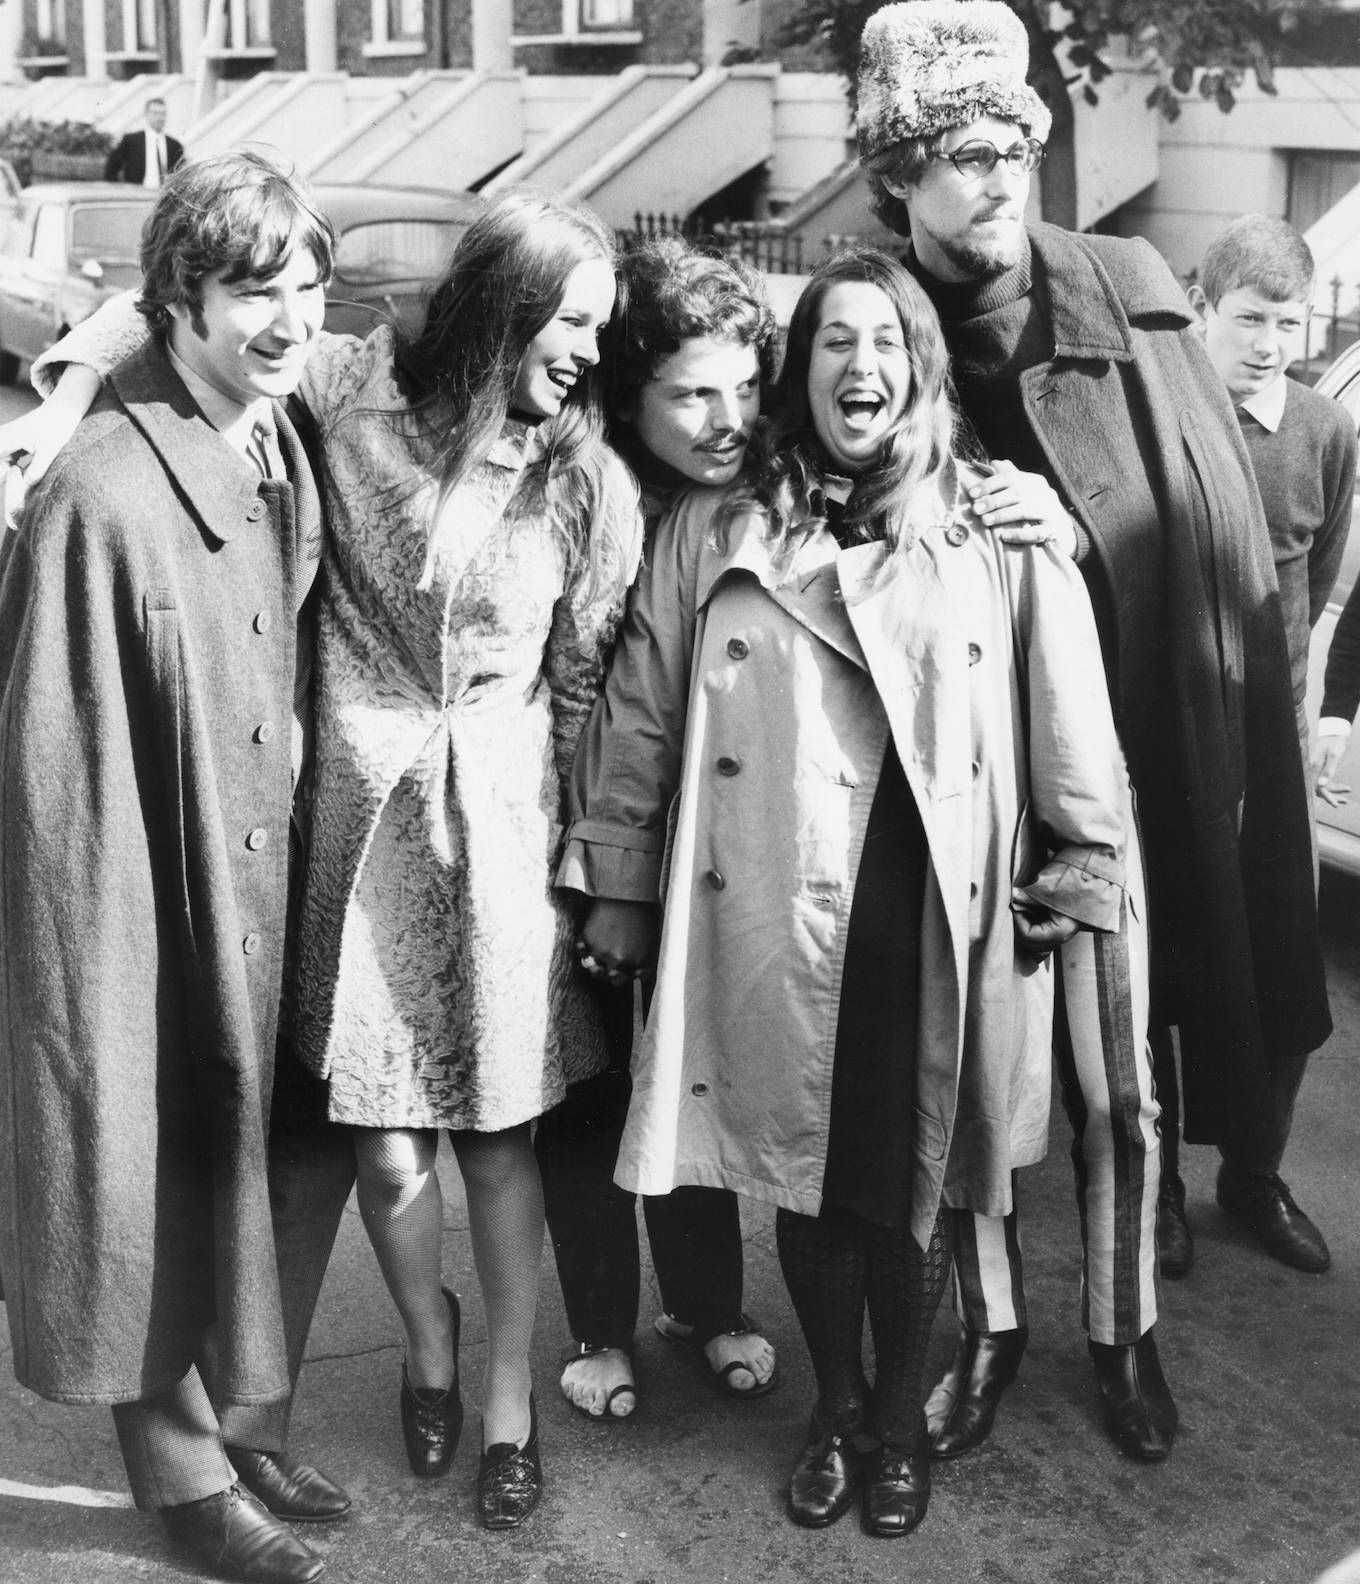 Happier times: Pop group 'The Mamas and the Papas': (L-R) Denny Doherty, Michelle Gillian, Cass Elliot and John Phillips, pictured with singer Scott McKenzie (centre), London, October 6th 1967. (Photo by Central Press/Hulton Archive/Getty Images)